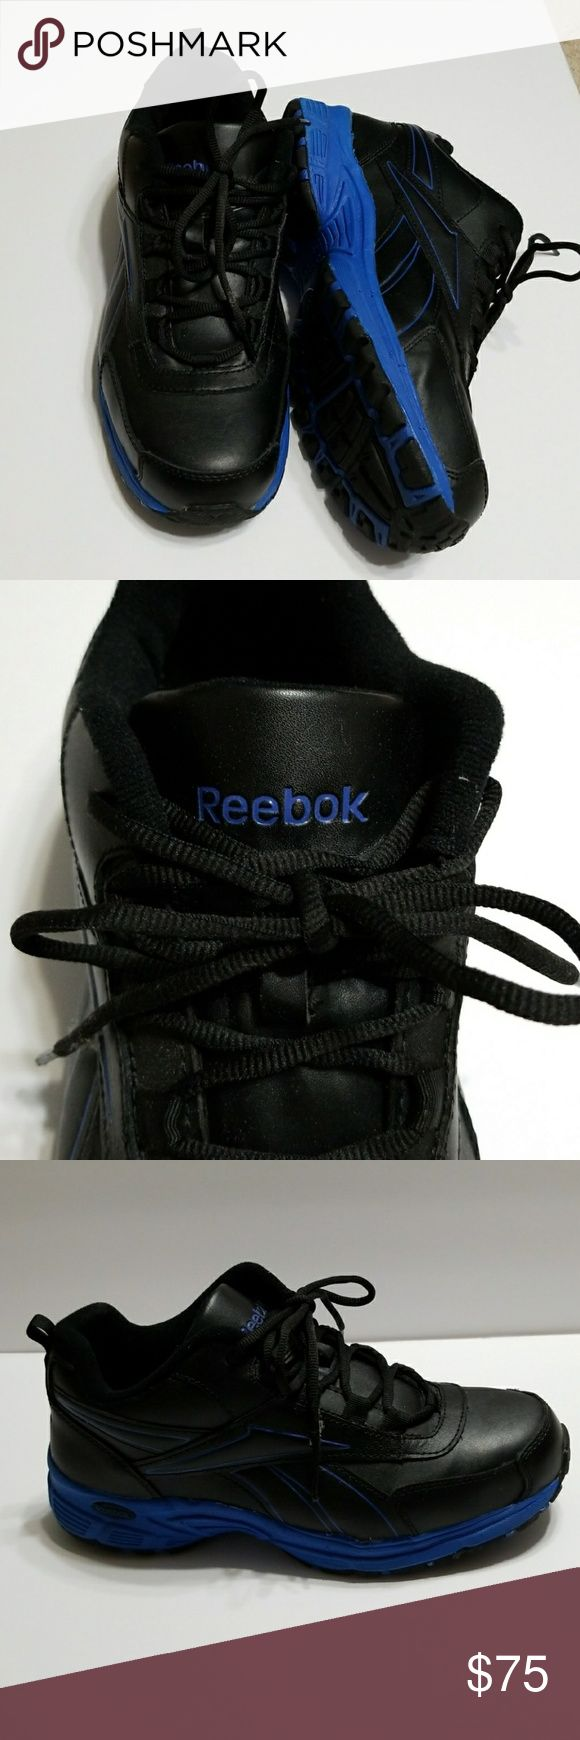 Reebok steel toed tennis shoes Black with blue trim stelled toed shoes 9 1/2 w Reebok Shoes Sneakers